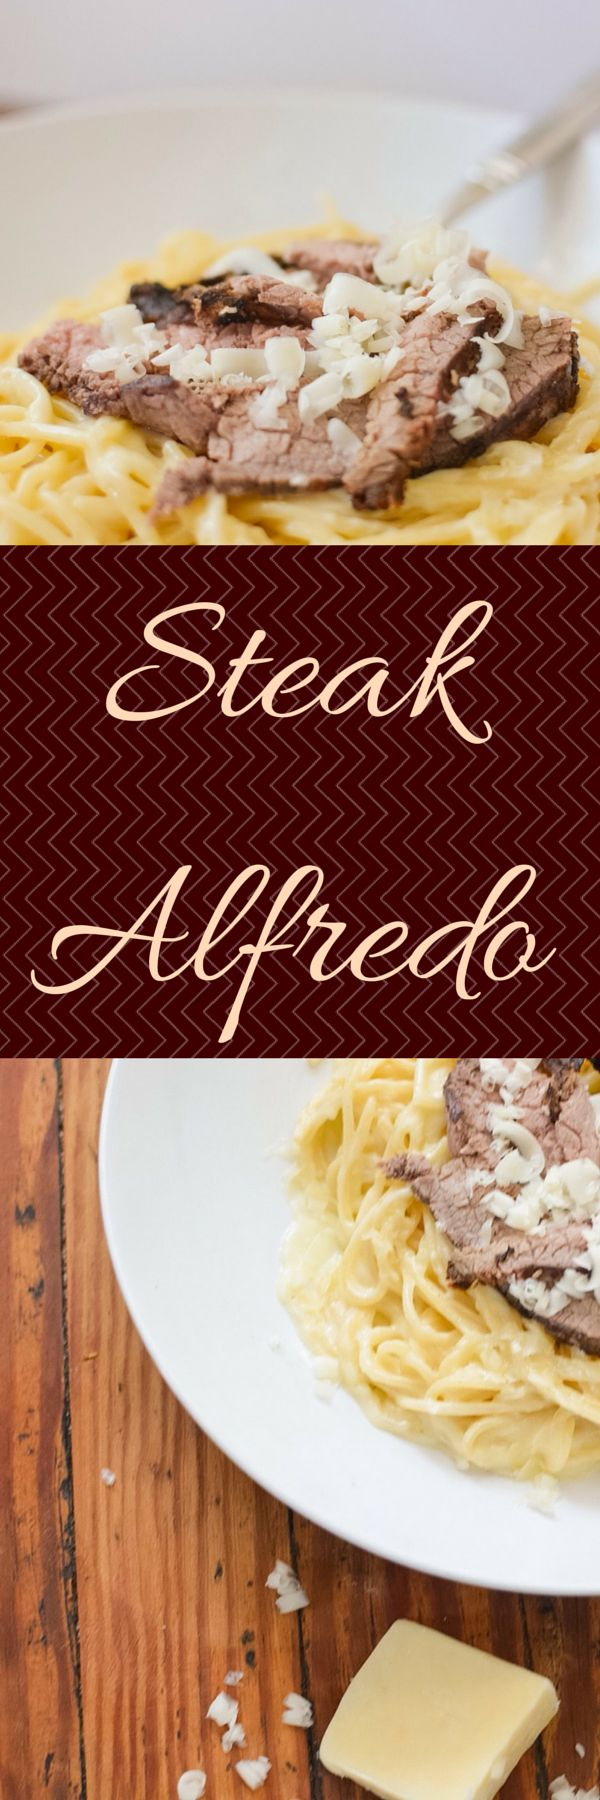 A creamy and decadent Steak Alfredo pasta for any special occasion or just Saturday date night.